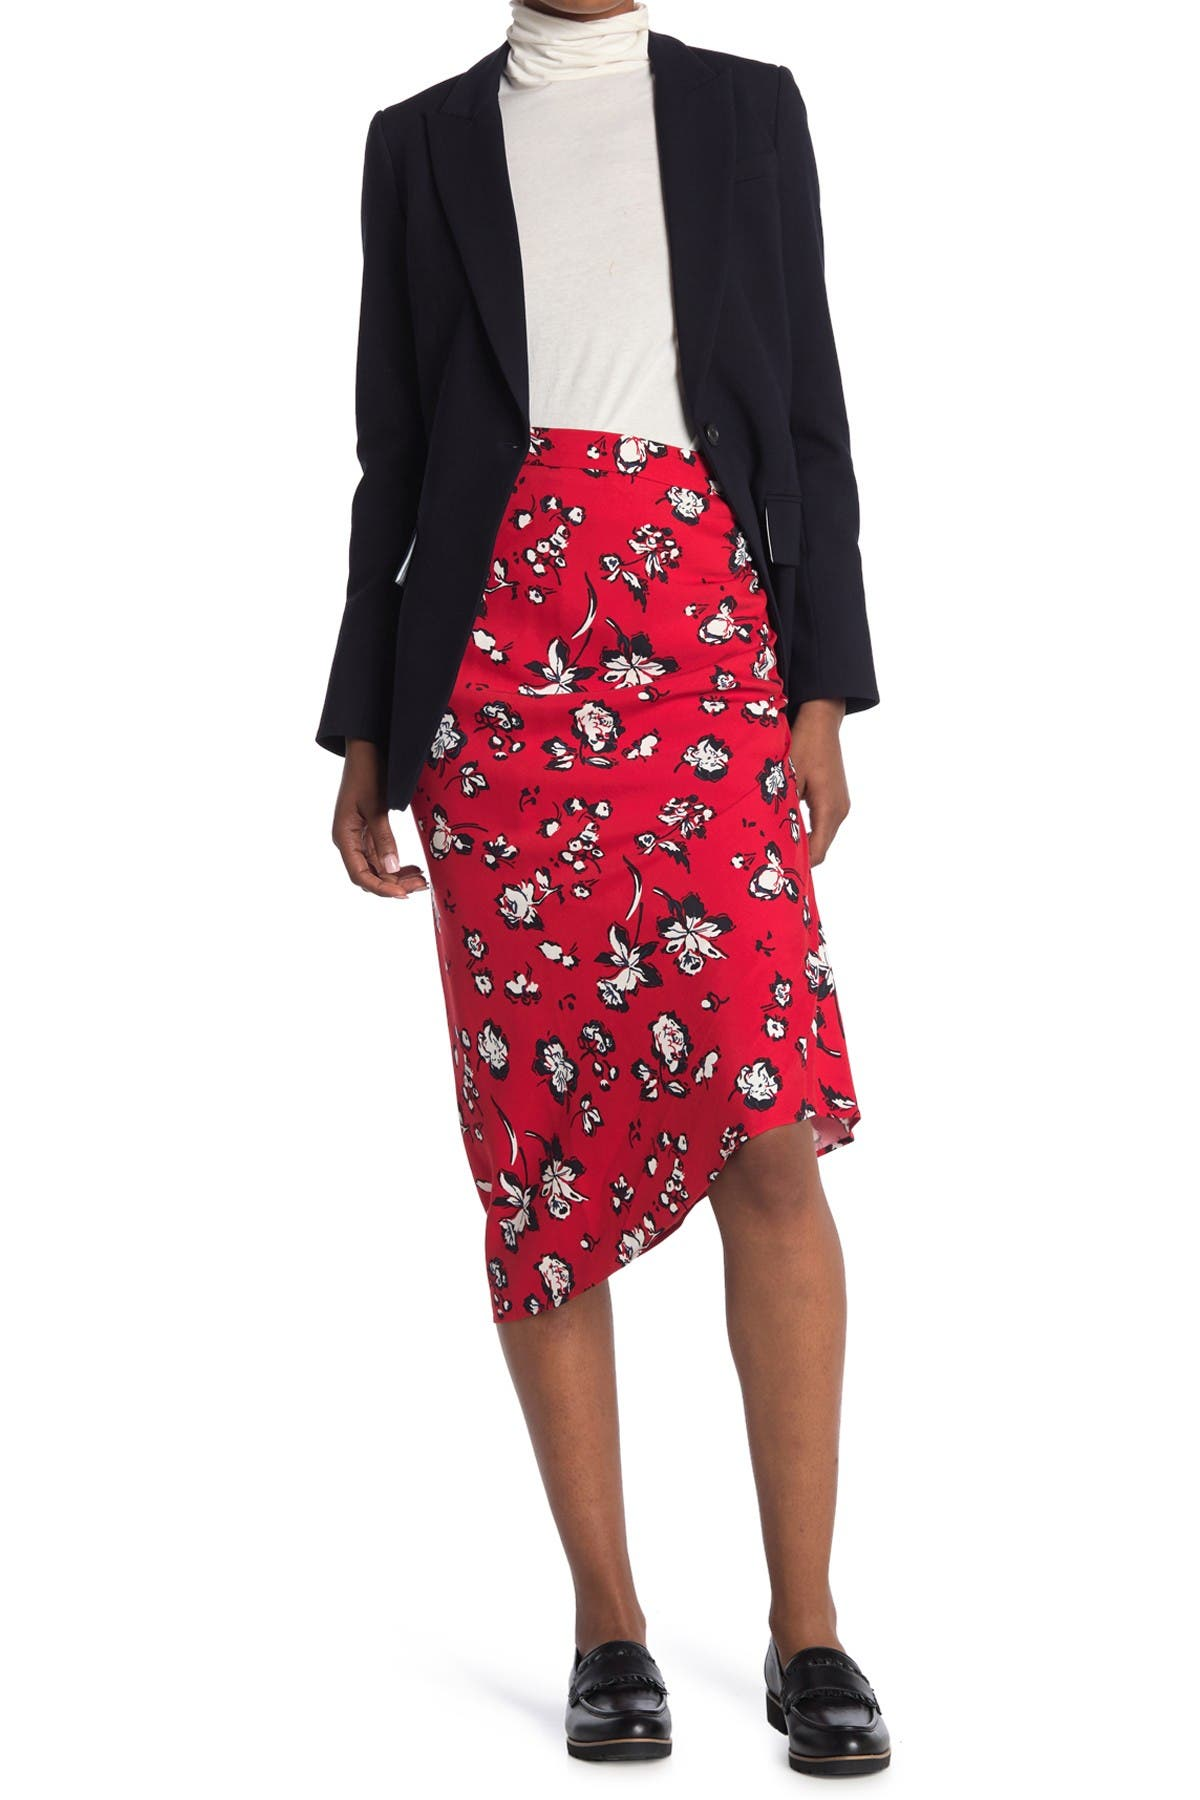 Image of VERONICA BEARD Cheryl Floral Printed Ruched Skirt